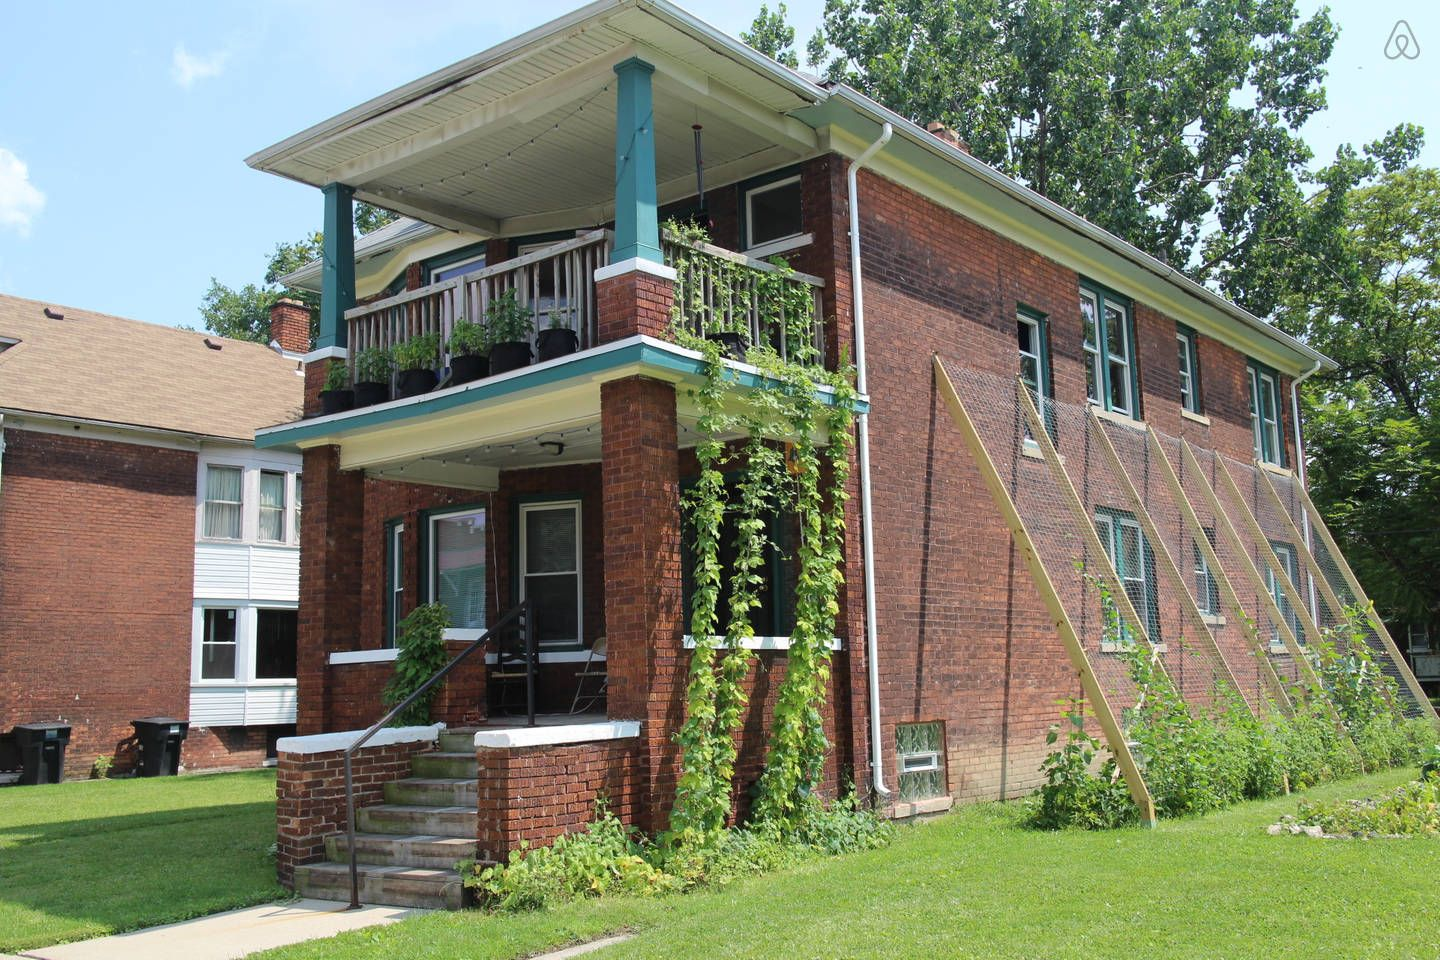 The Detroit Homestead Entire Flat In Detroit Renting A House Michigan Vacations House Styles